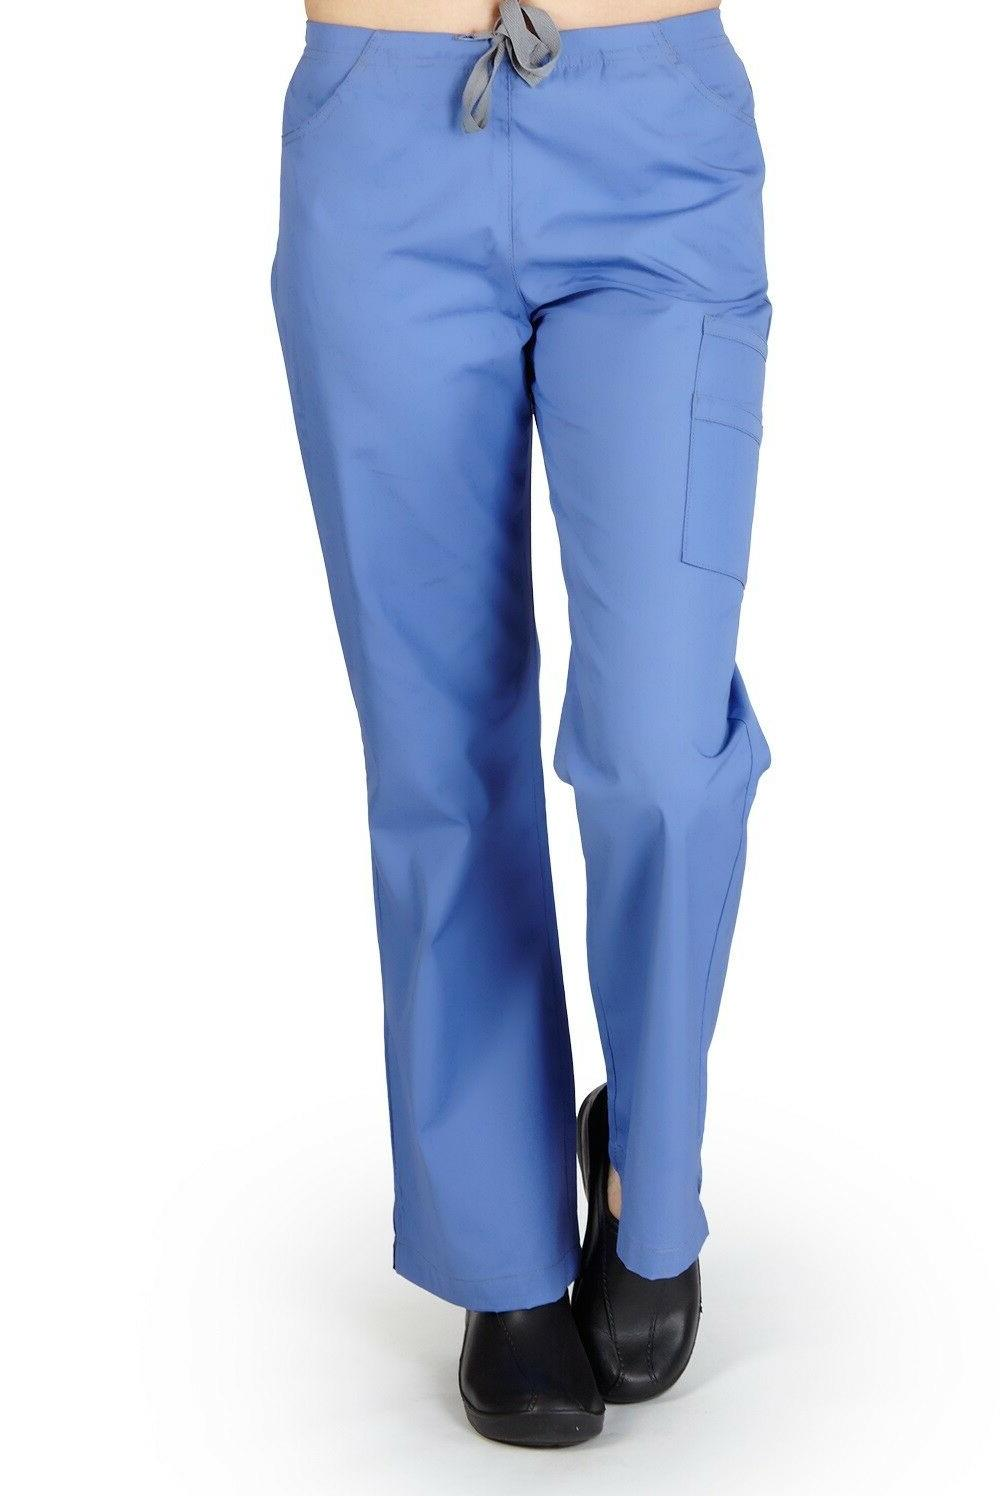 M&M SCRUBS Two Tone,Two Front Pocket With 2 Cargo Pocket Fla